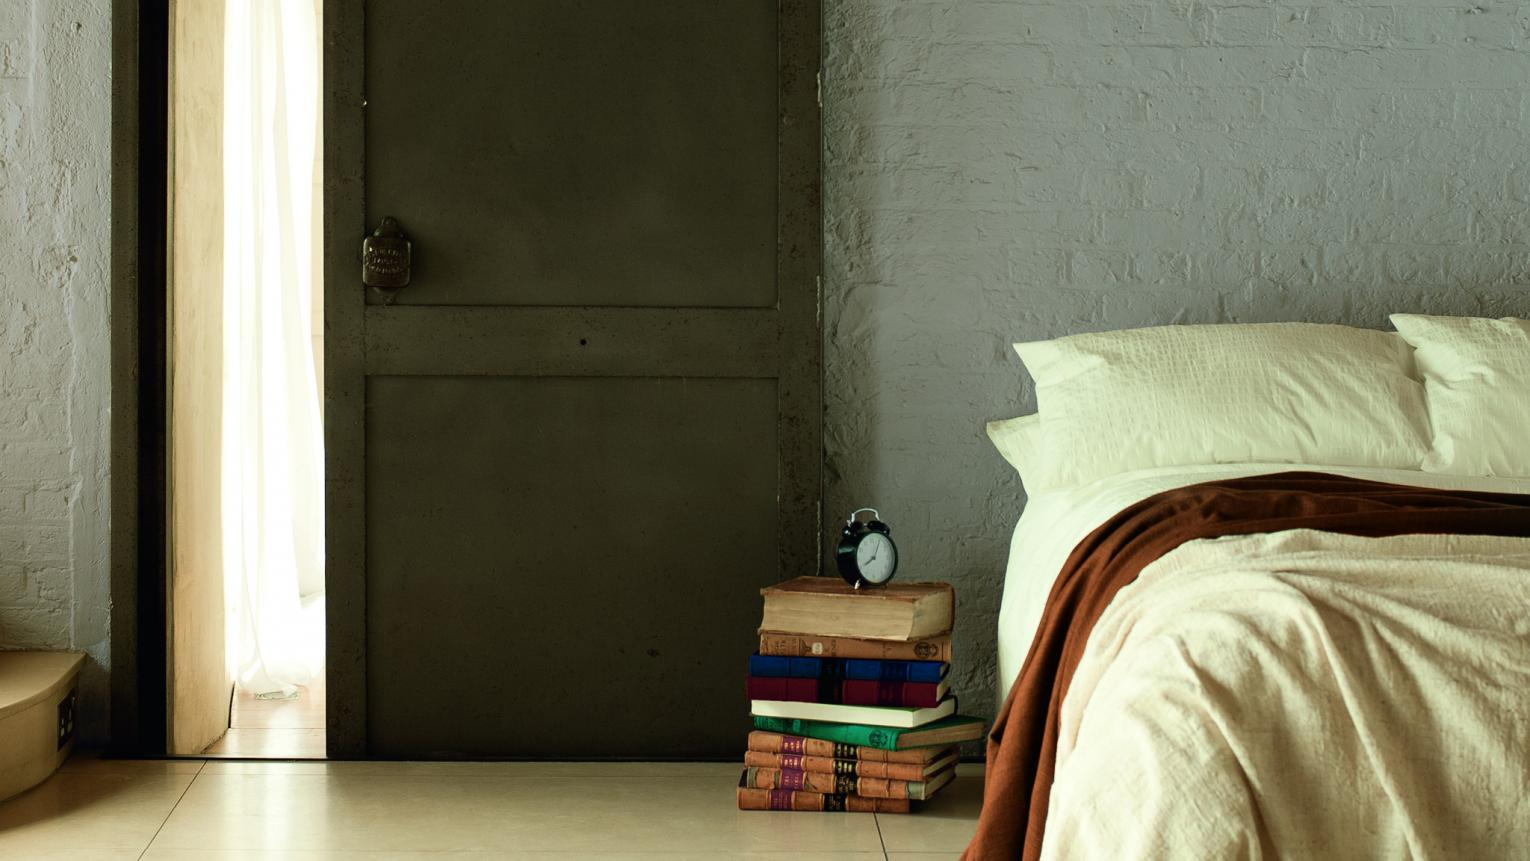 Use cool neutrals for a tranquil bedroom